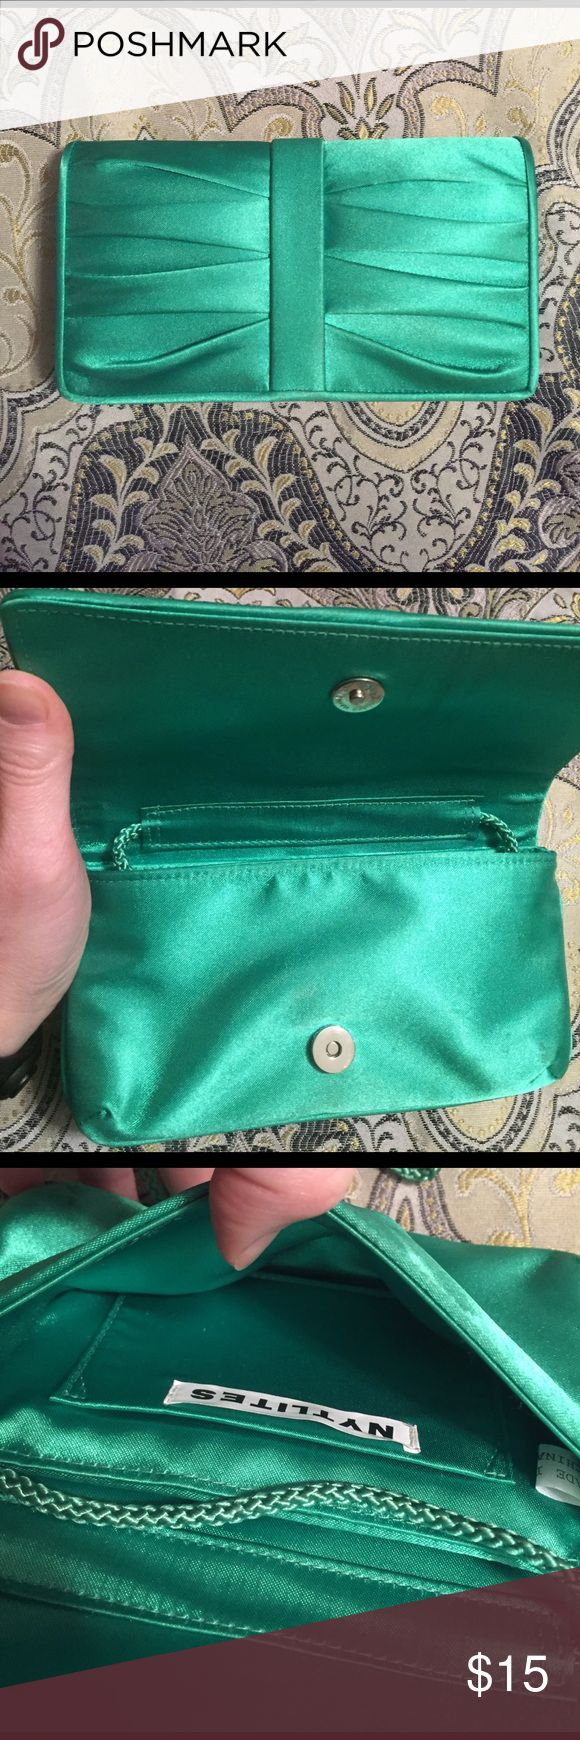 Kelly Green Clutch Kelly Green Clutch. Matches perfectly with the Calvin Klein dress in a separate listing. Bundle and save! Bags